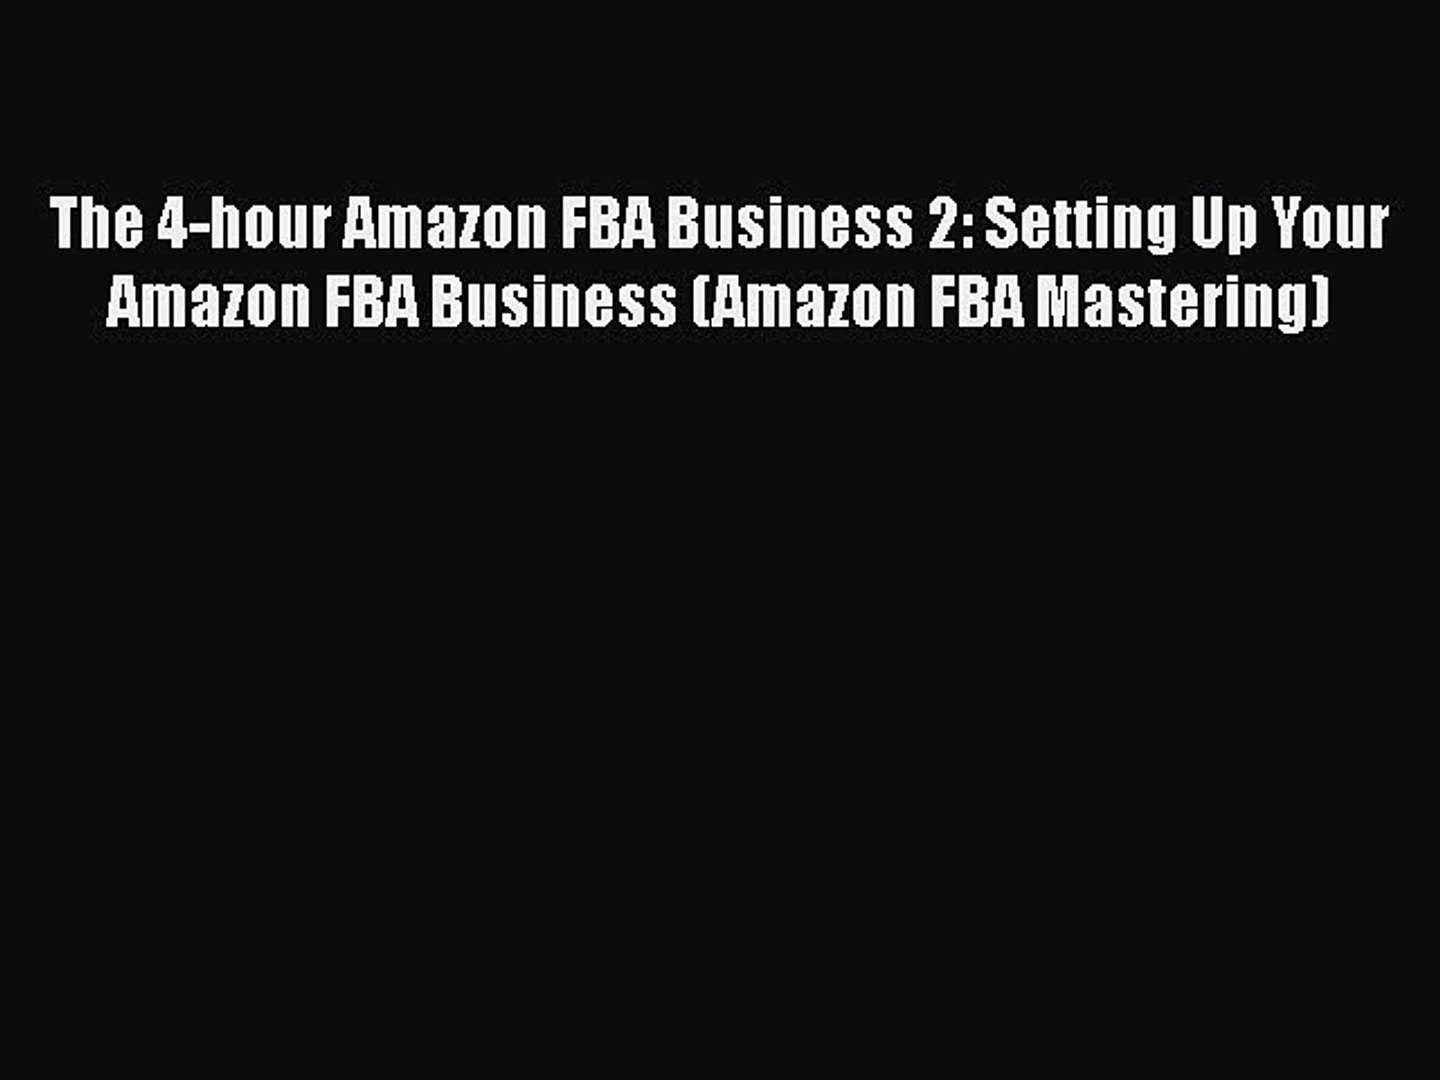 [Read Book] The 4-hour Amazon FBA Business 2: Setting Up Your Amazon FBA Business (Amazon FBA